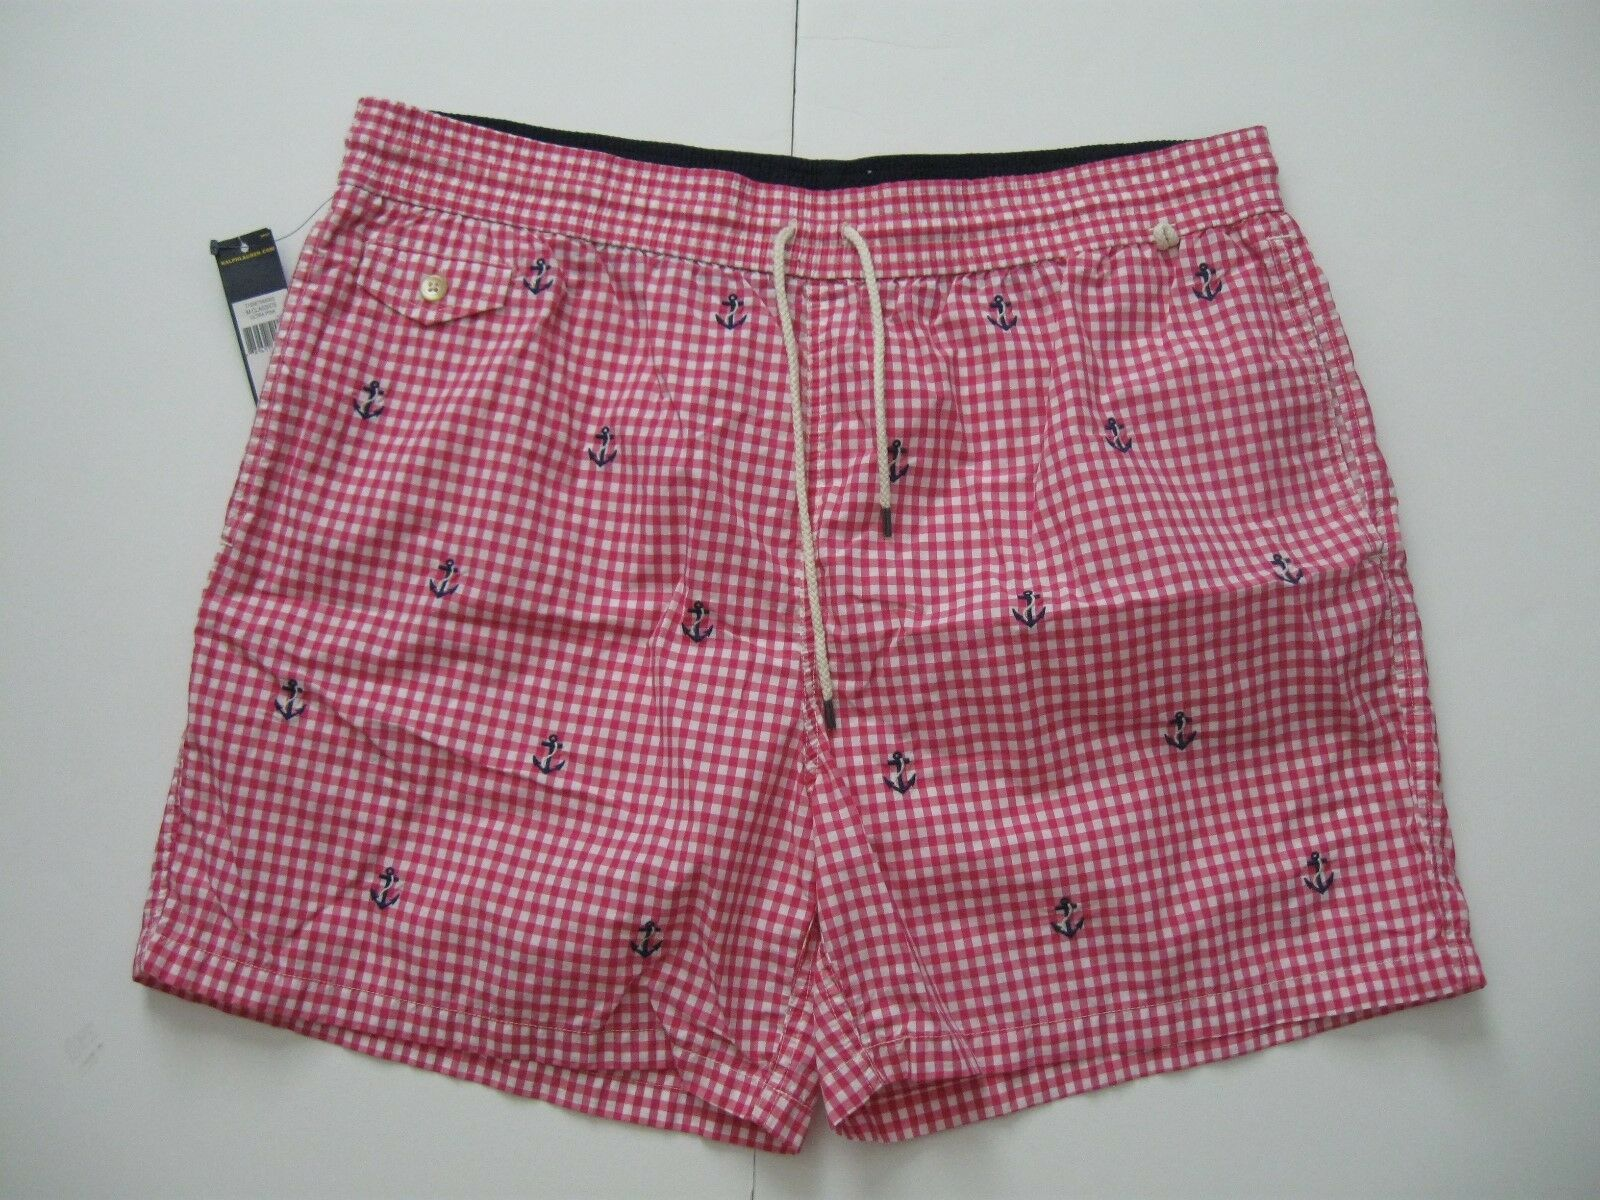 POLO RALPH LAUREN Men's Gingham Anchor Embroidered Traveler Swim Shorts XXL